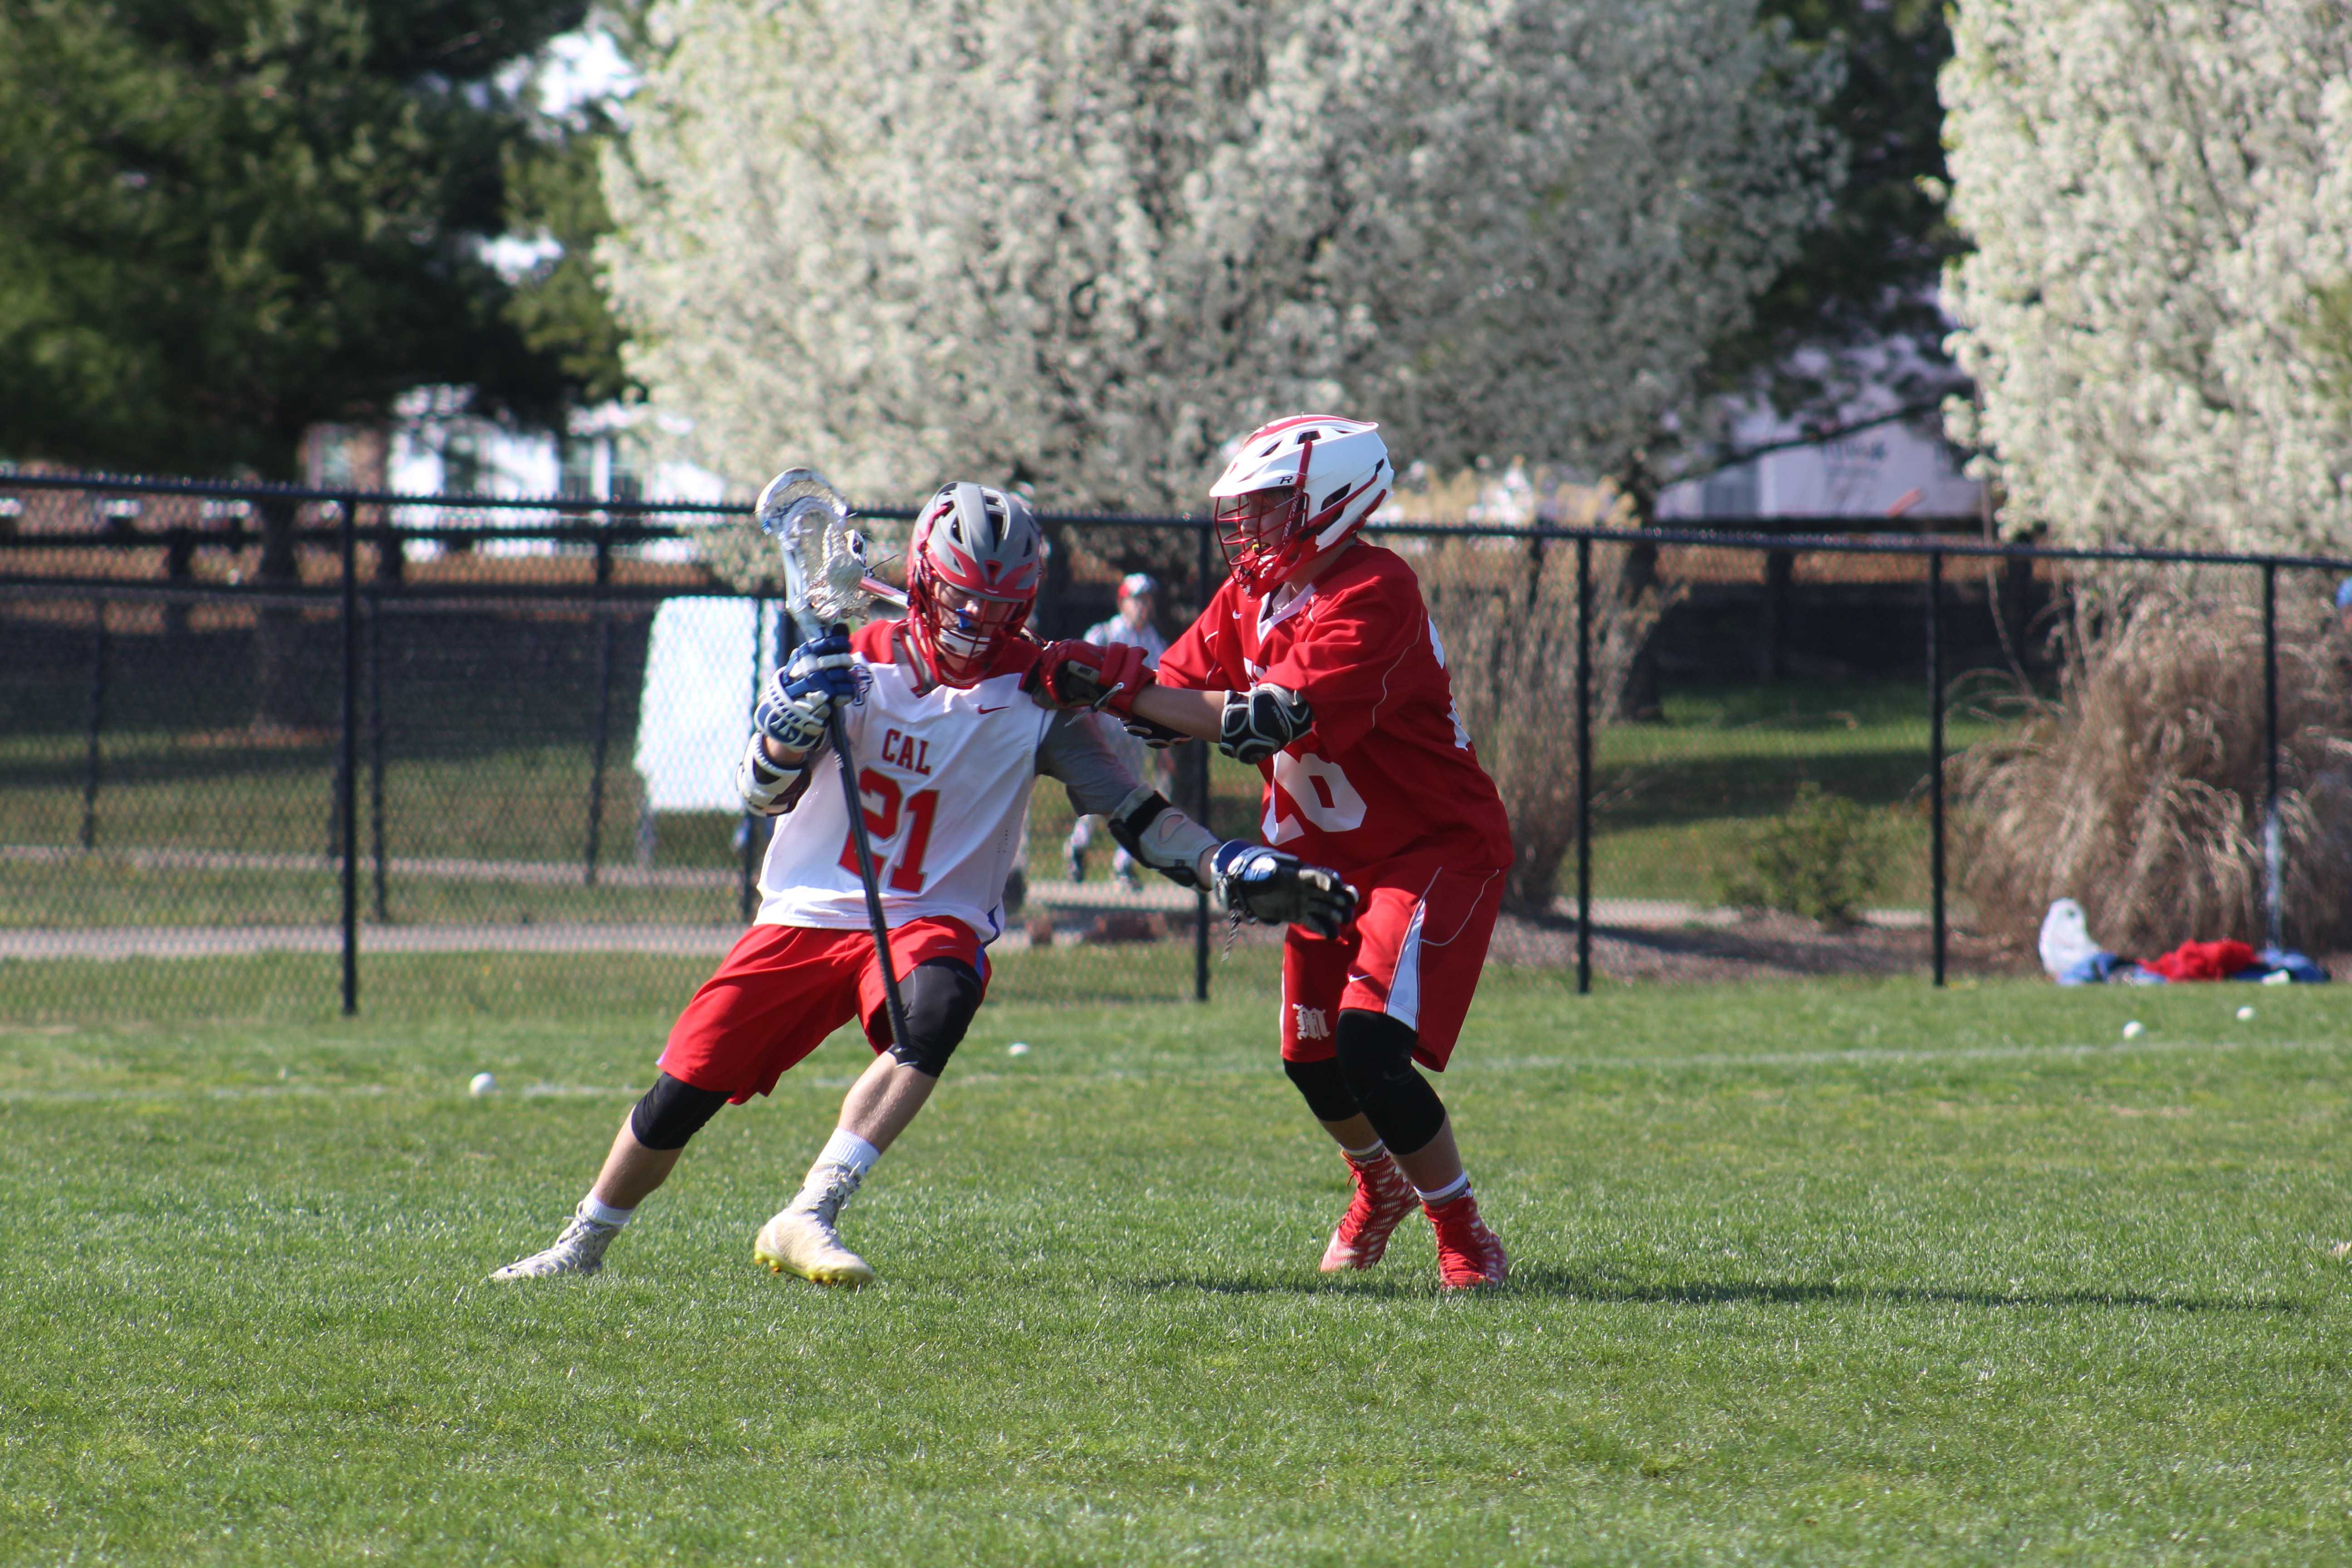 Late rally by Crimson boys' lacrosse team not enough to overcome KCD